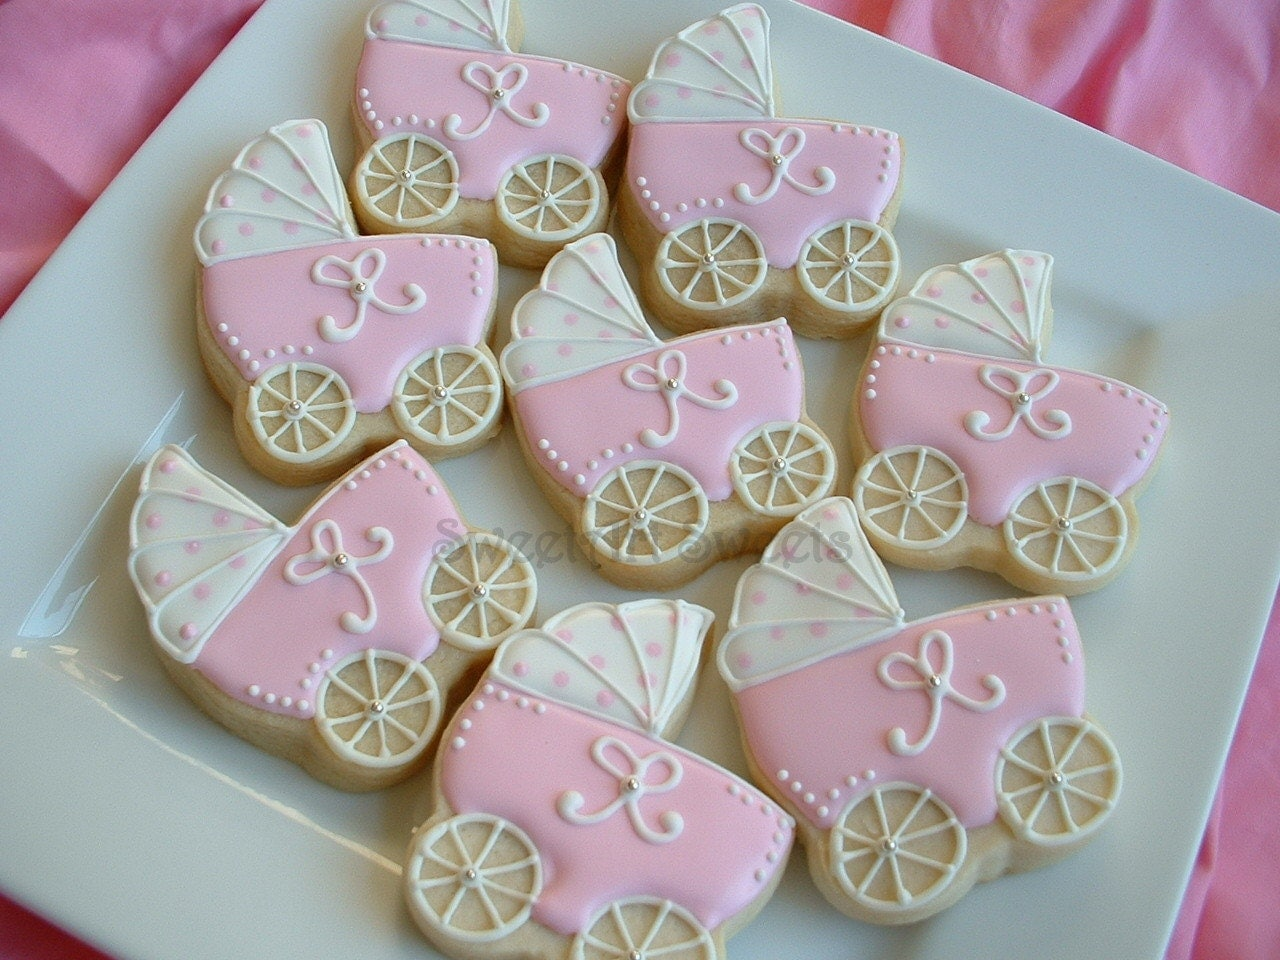 Baby Shower Cookies   Baby Stroller Cookies   1 Dozen Baby Carriage Favors    Personalized Cookies